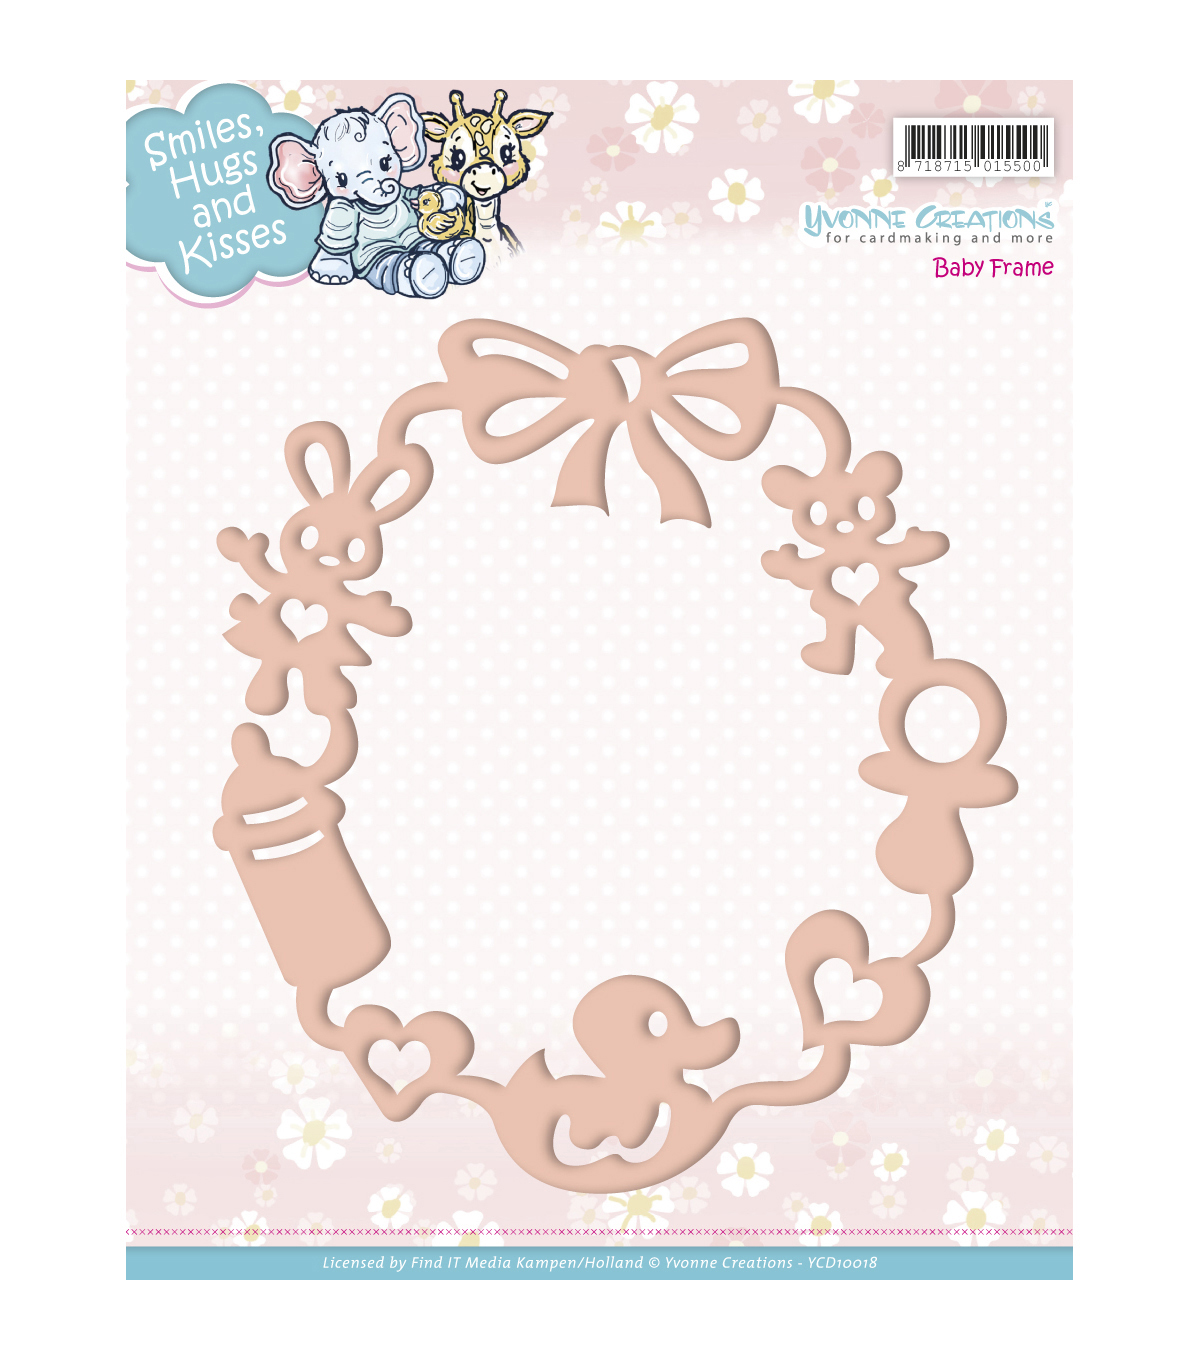 Yvonne Creations Smiles, Hugs & Kisses Die-Baby Frame